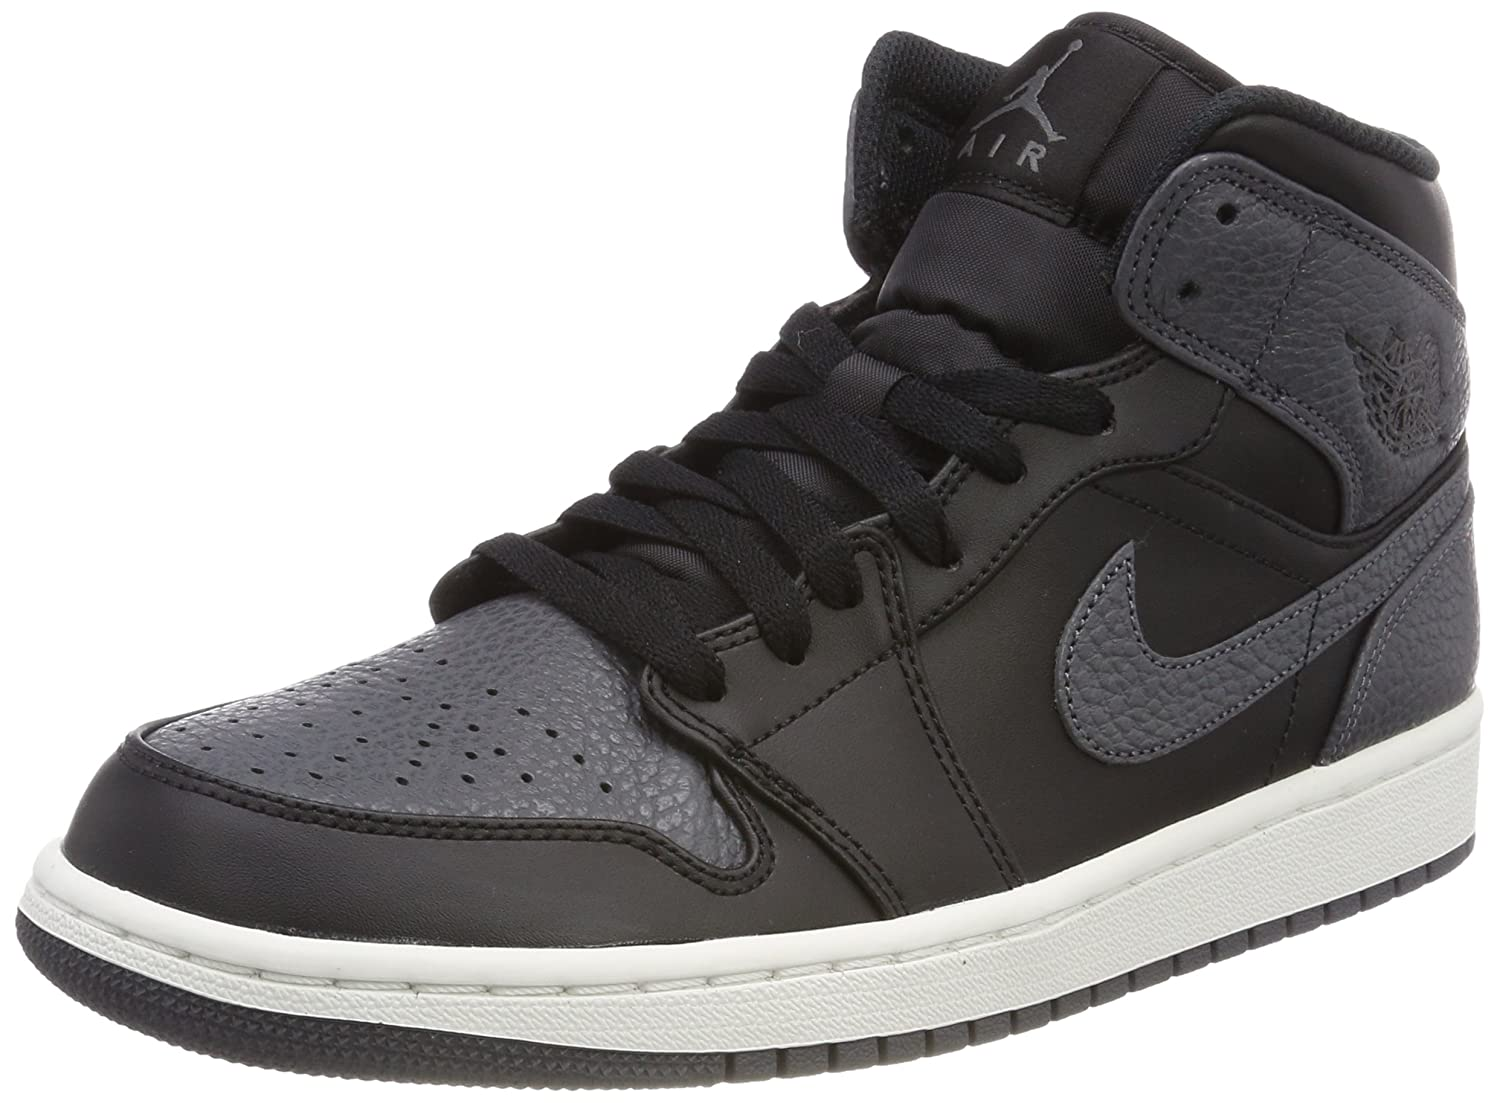 Black, dark grey-summit white Nike - AIR JORDAN 1 MID